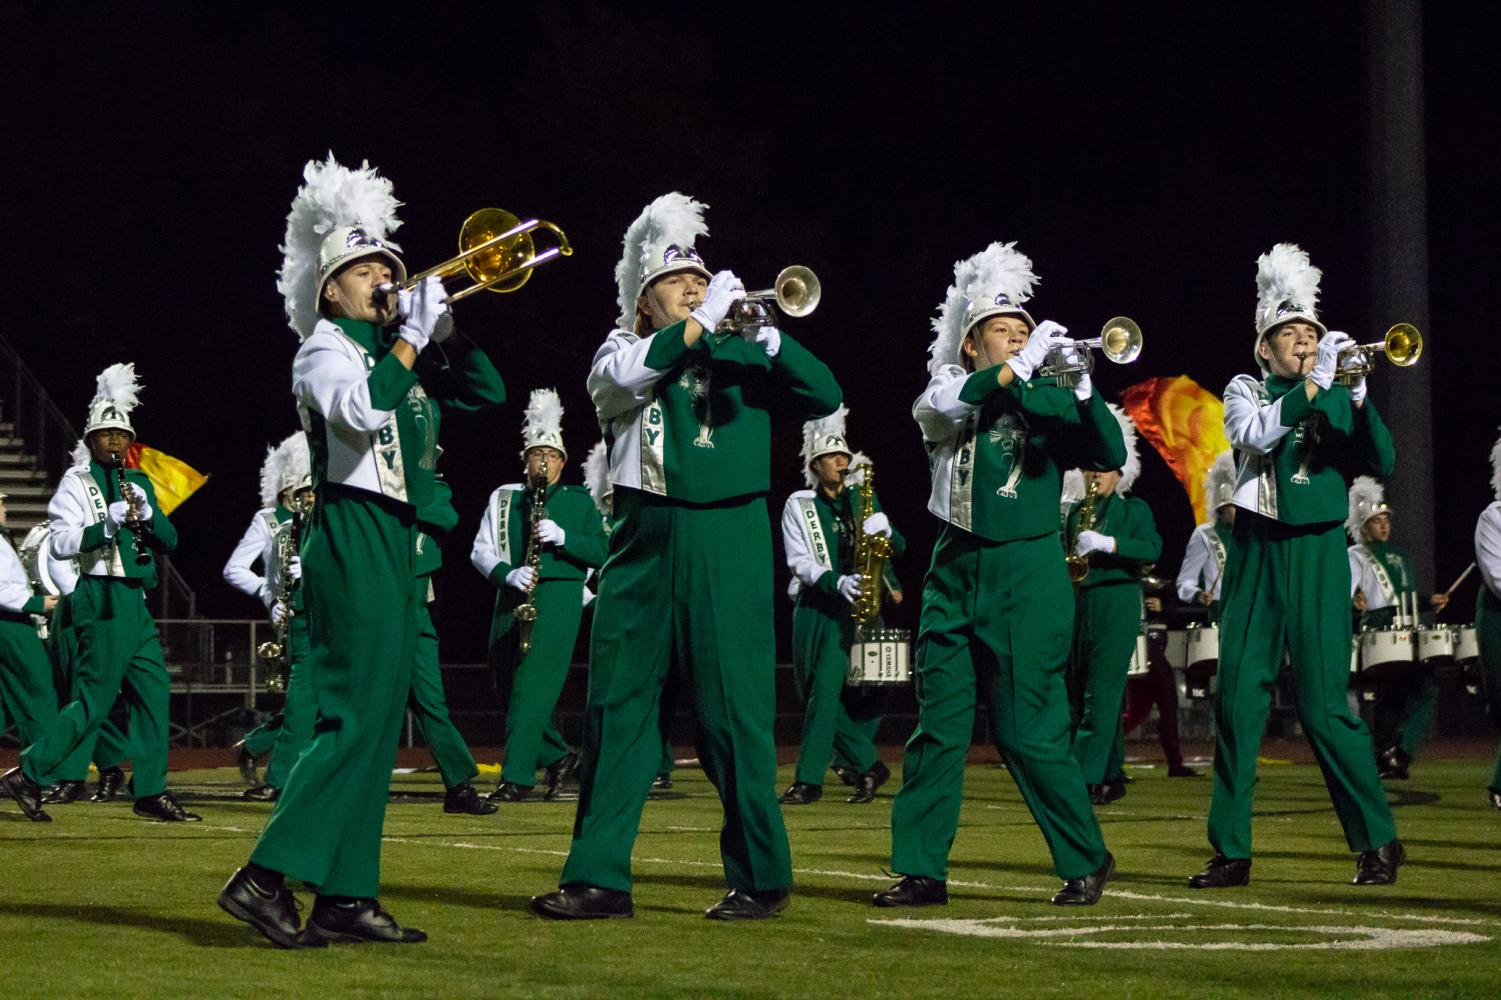 Rebel+by+Derby+Marching+Band+photo+gallery+by+Regina+Waugh